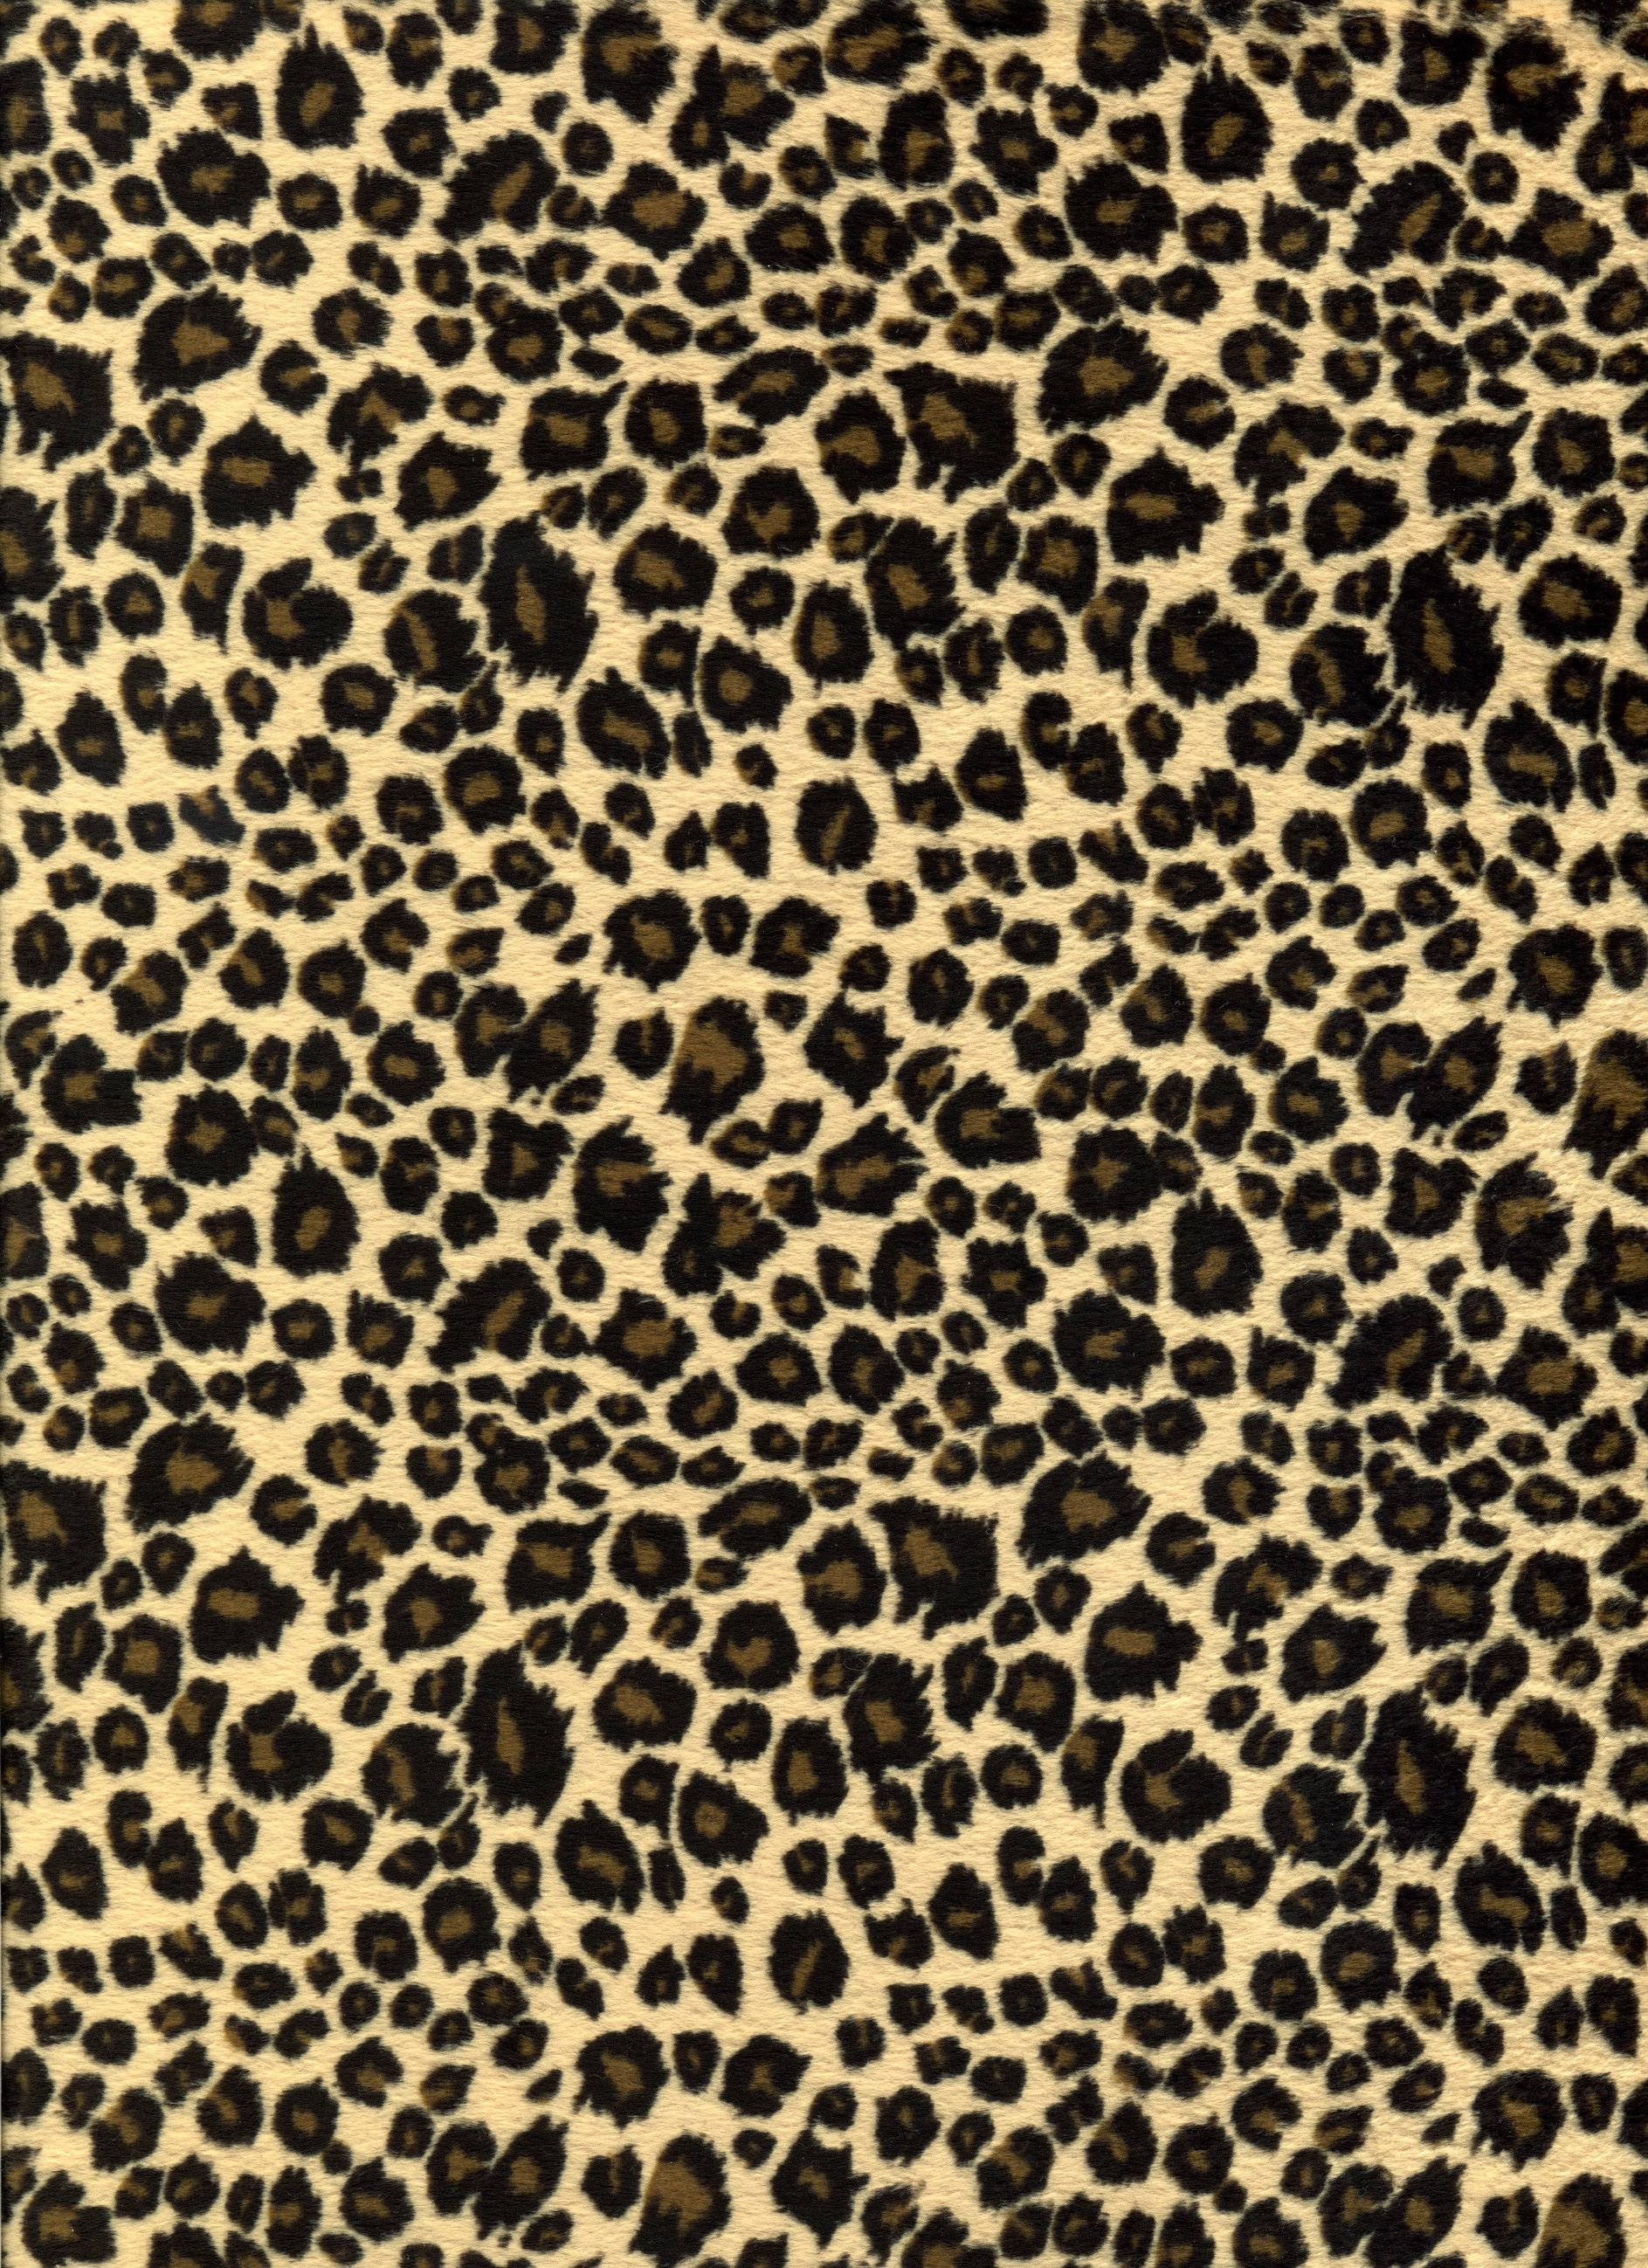 Any And All Animal Print Wallpaper Cheetah Print Background Leopard Print Pillows